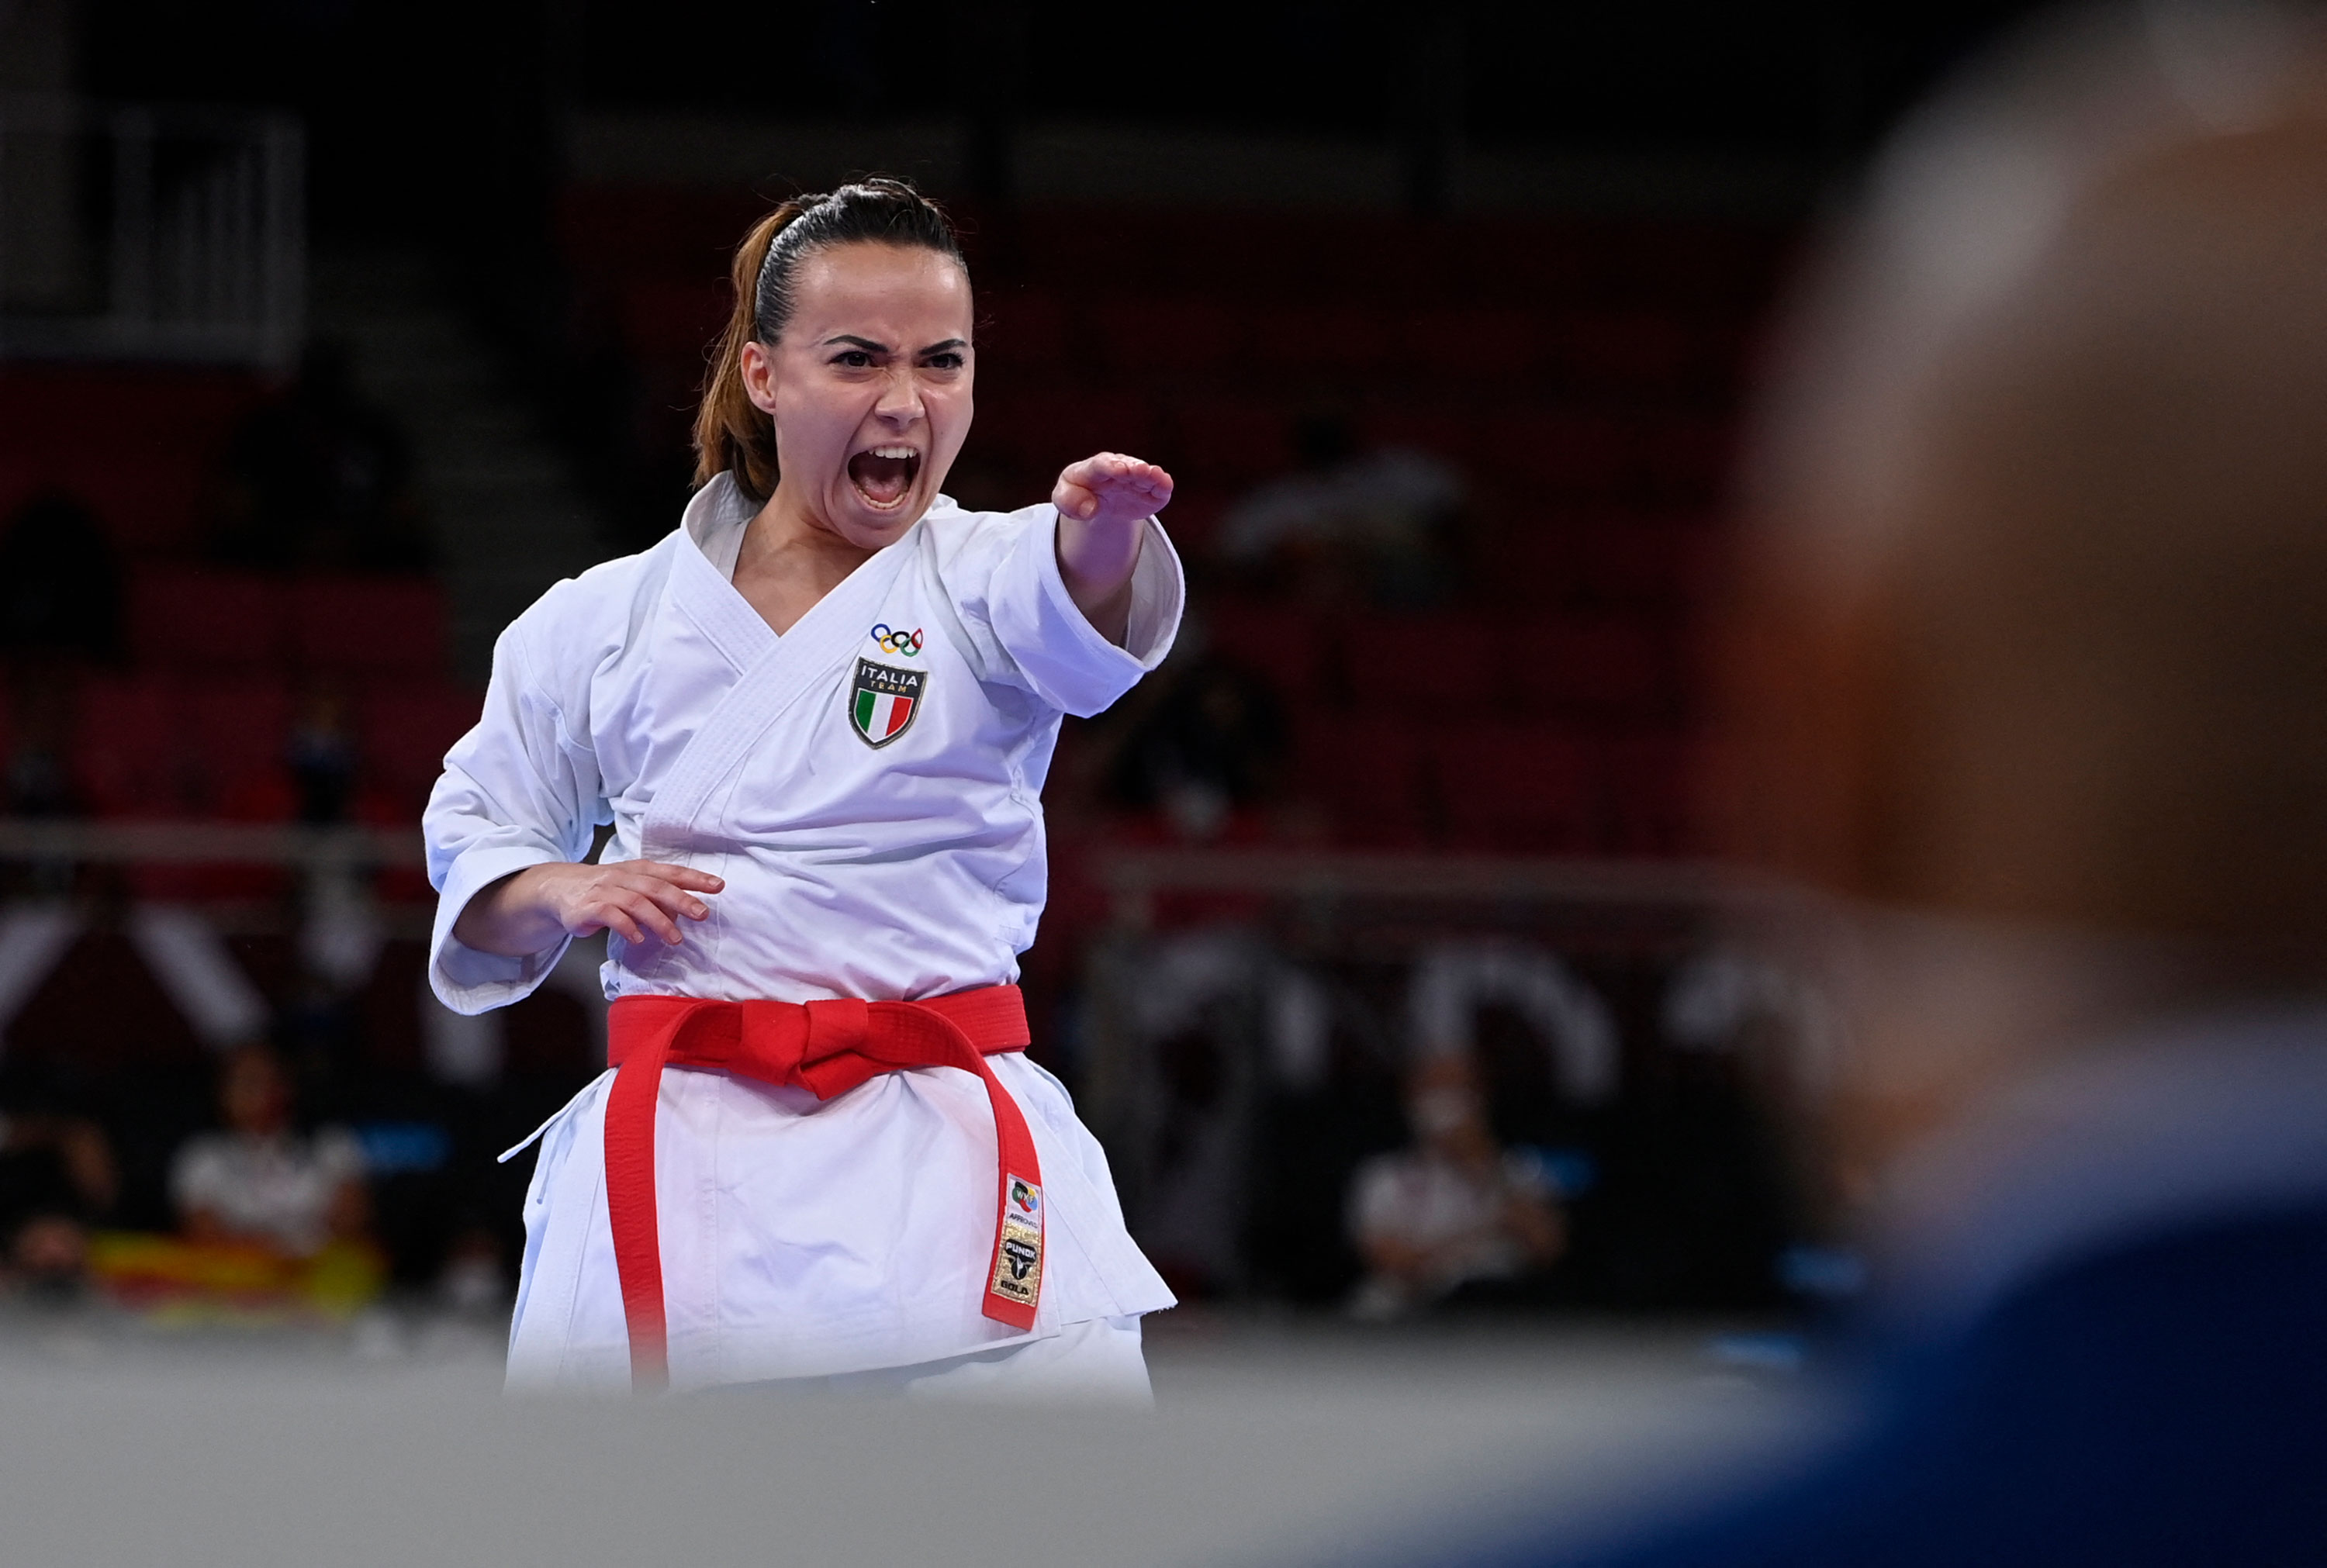 Italy's Viviana Bottaro performs in the kata event of karate competition on Thursday.